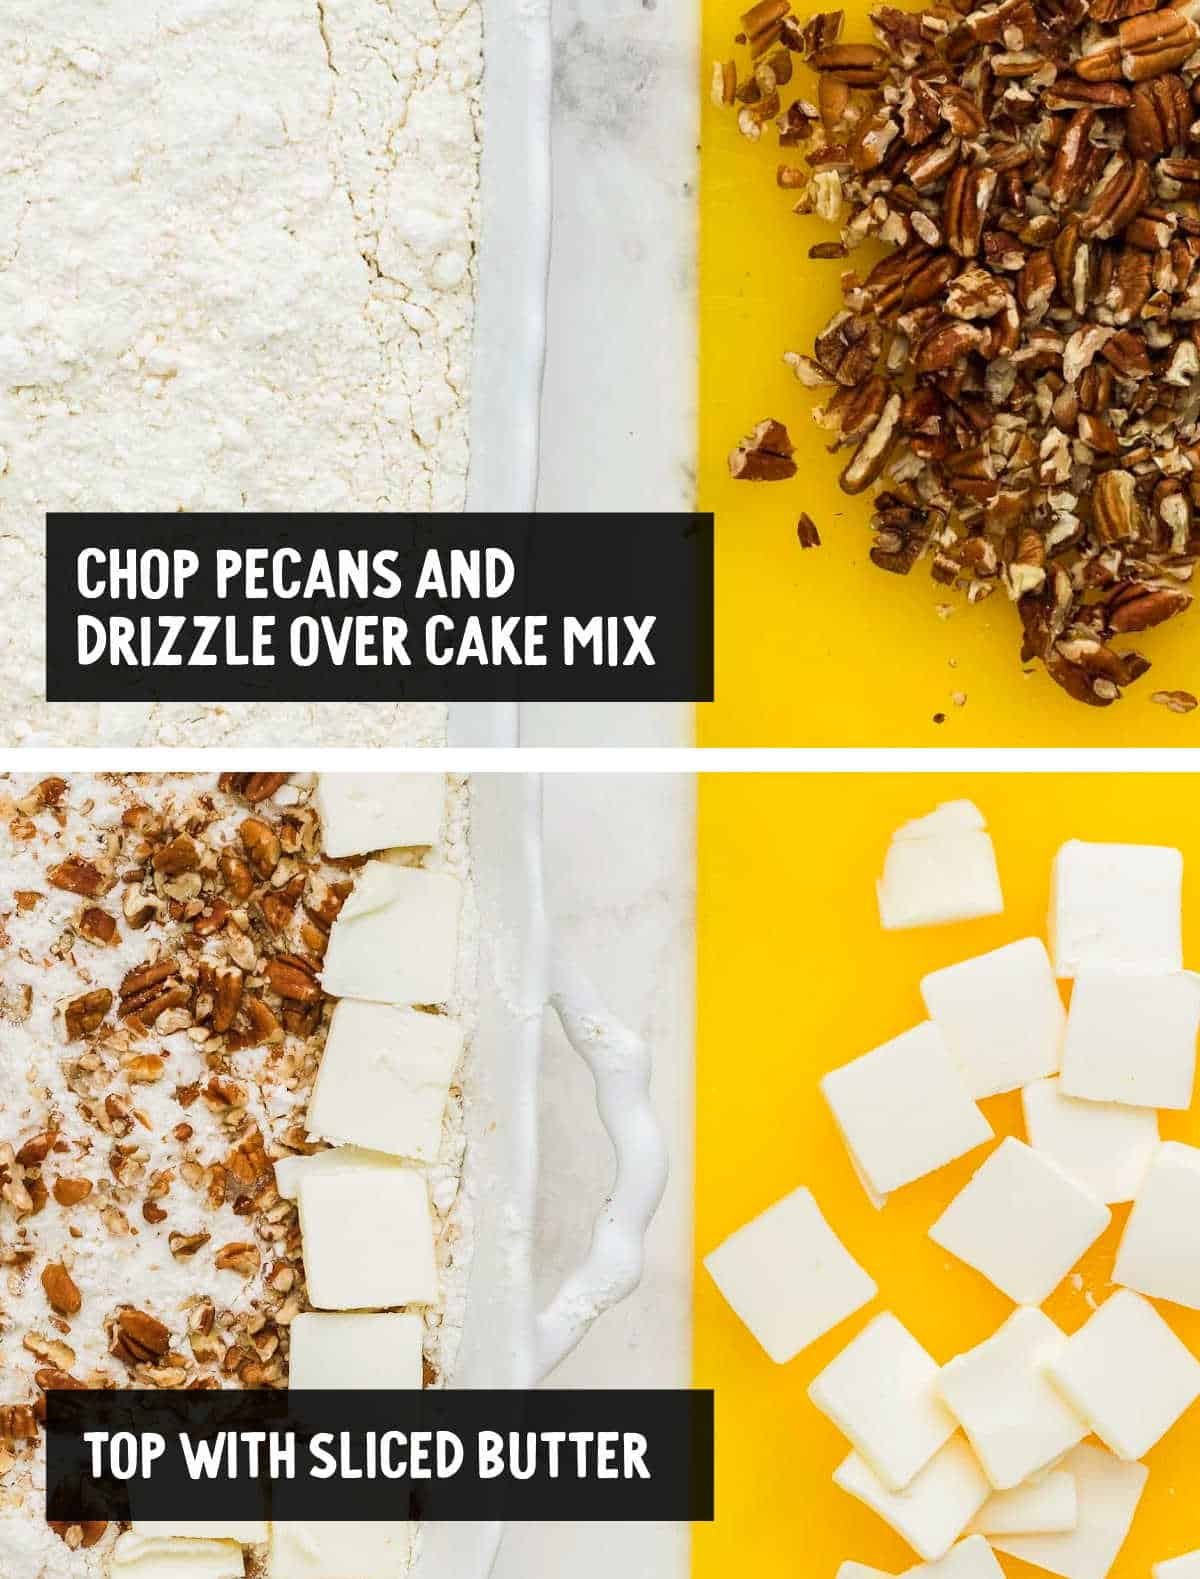 collage: topping the yellow cake mix with chopped pecans and butter